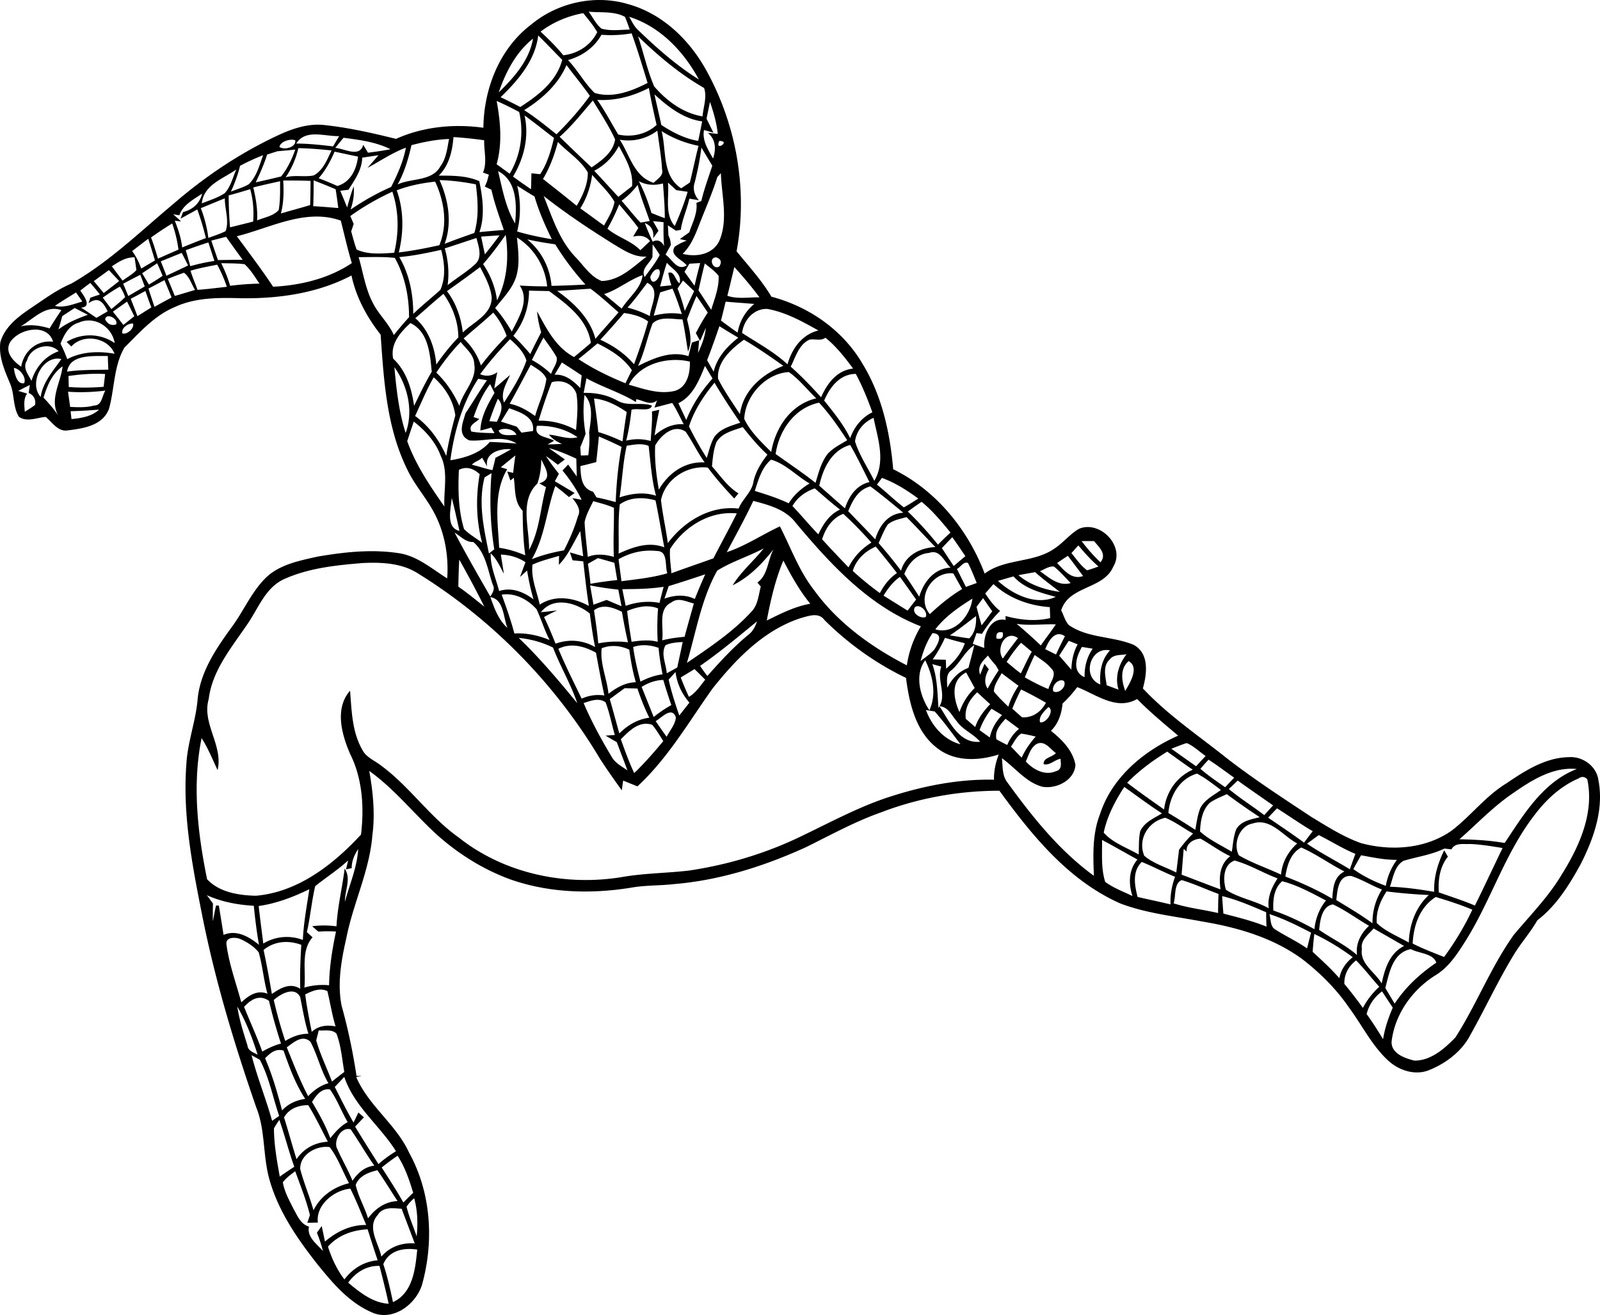 spiderman coloring pages kids printable - Character Coloring Pages Kids